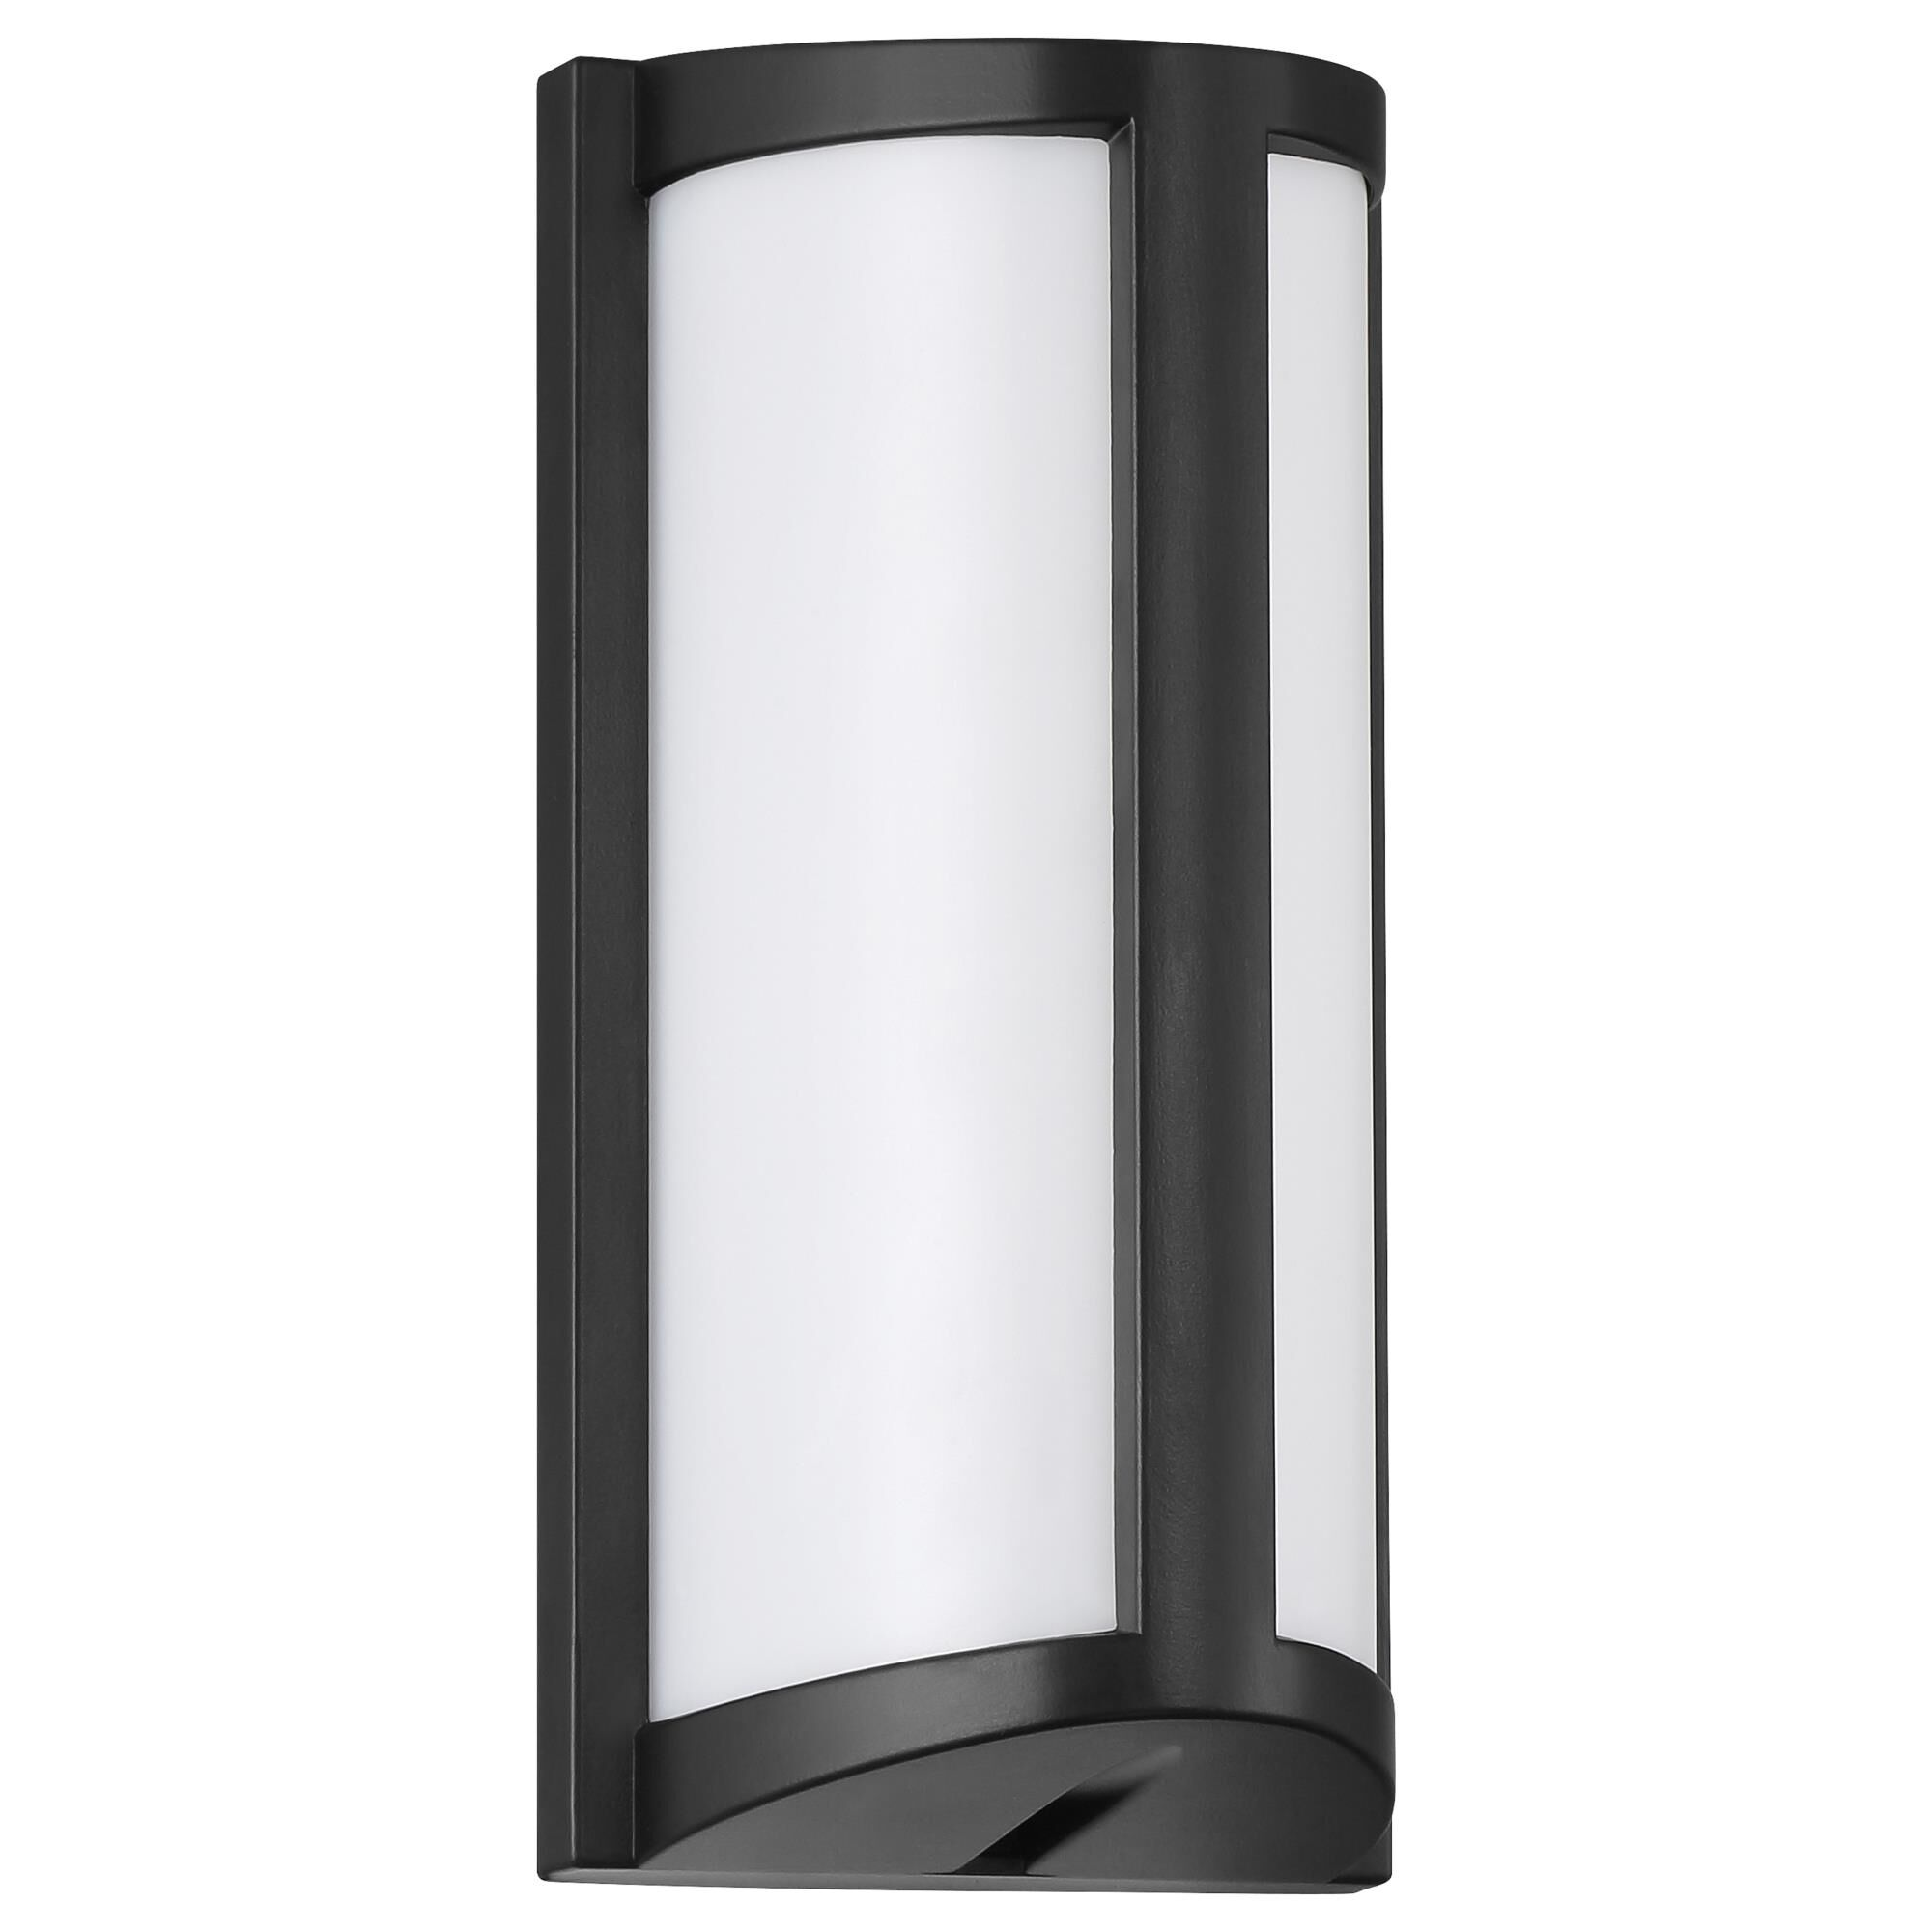 Access Lighting Margate 10 Inch LED Wall Sconce Margate 20110LEDDMG BLACR Modern Contemporary